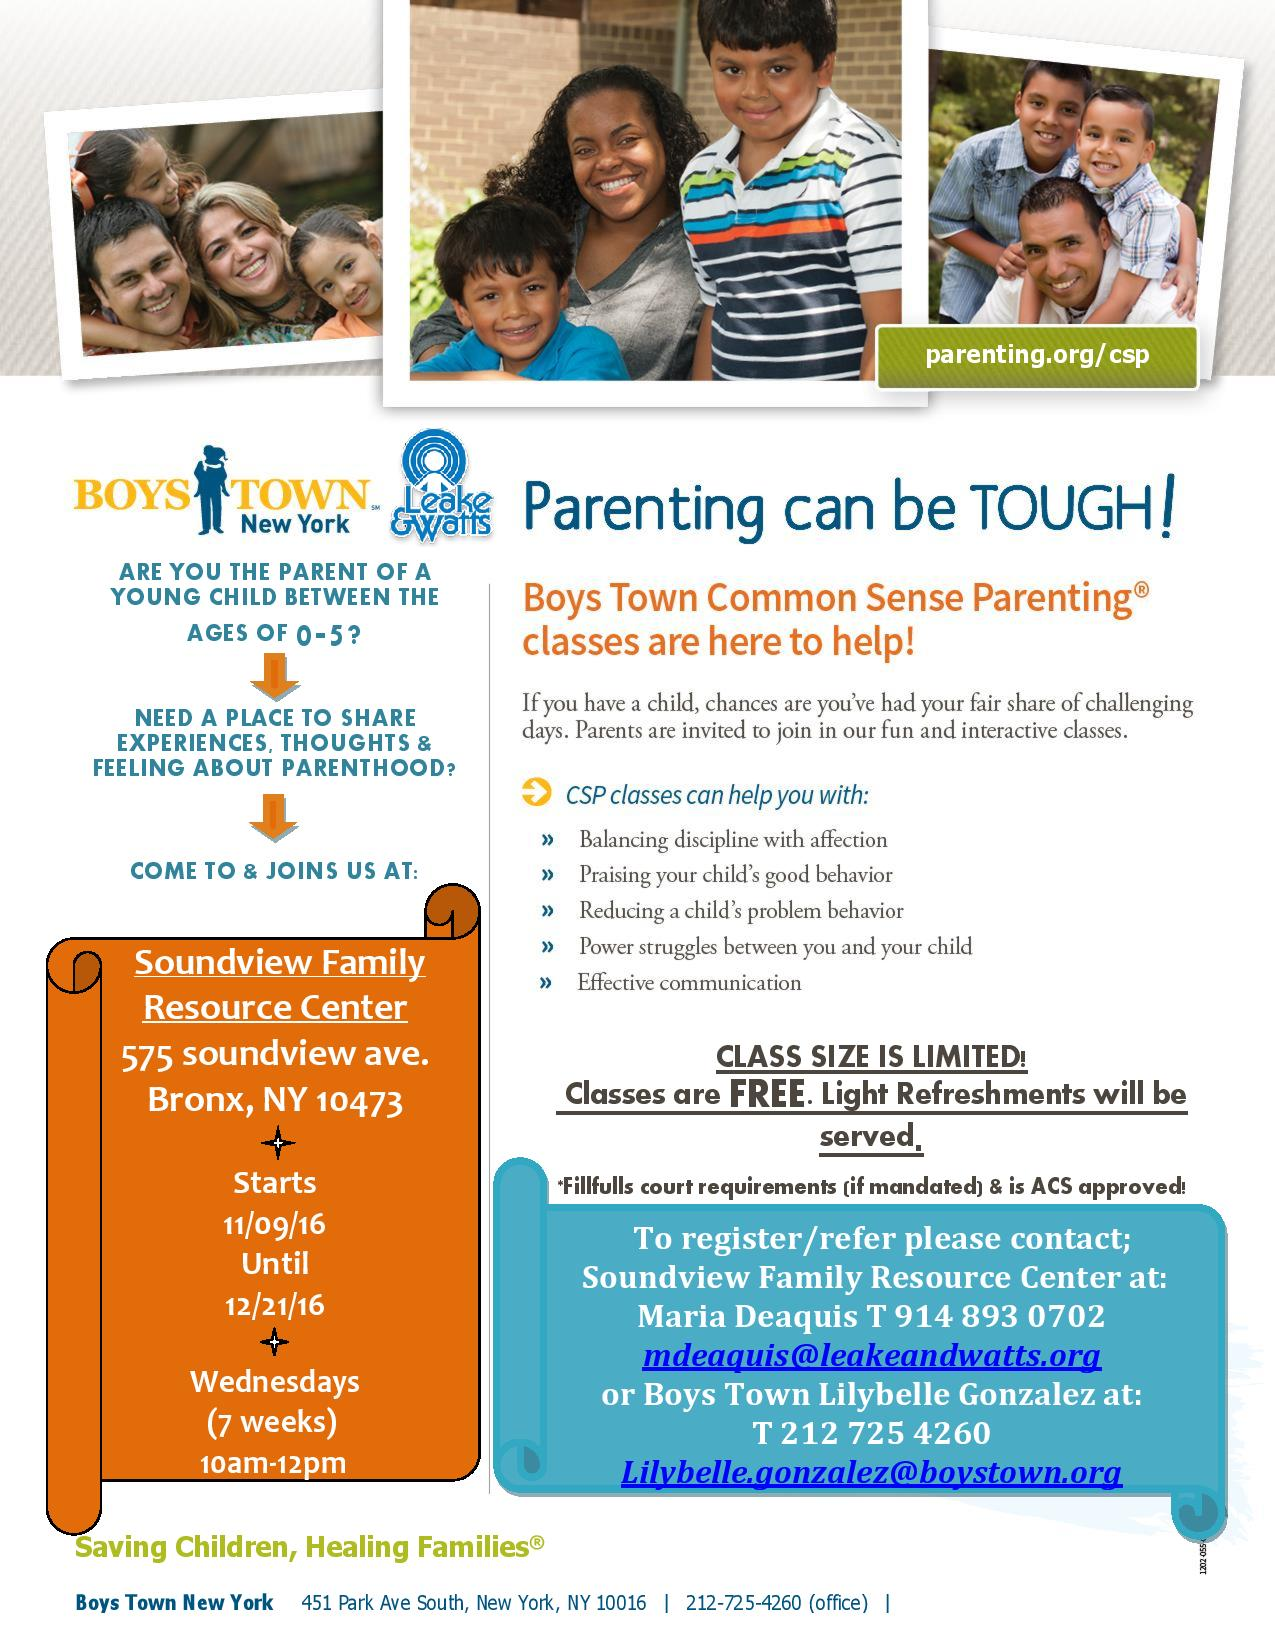 Boystown parenting class flyer 2016 page 001 for Parent flyer templates